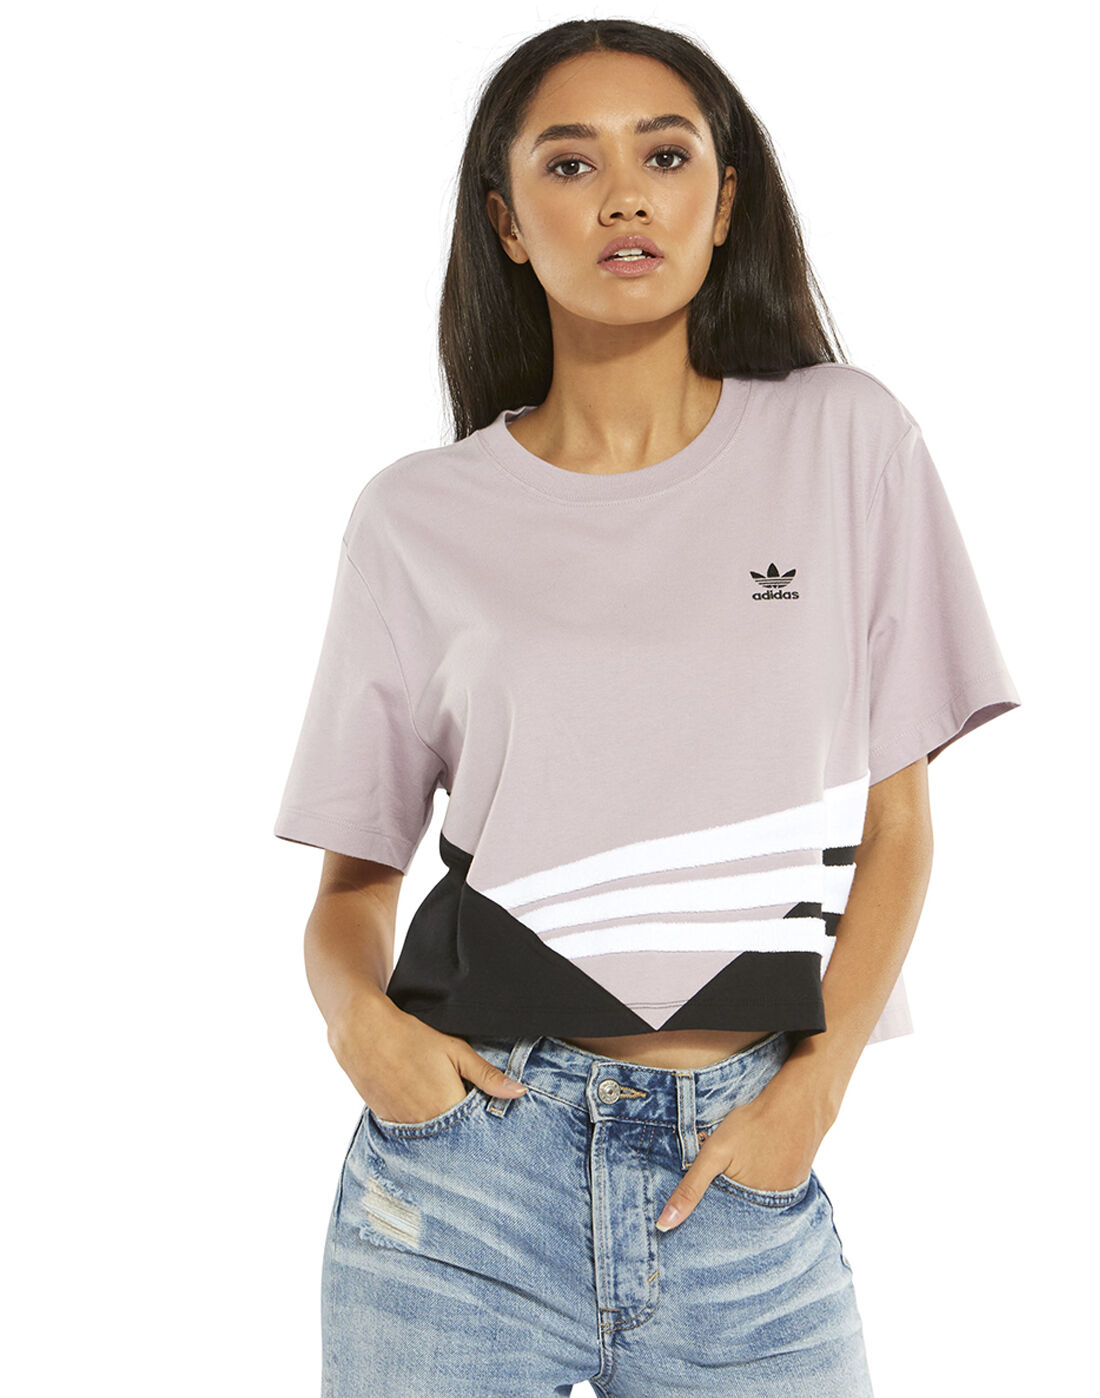 Women's Purple adidas Originals Cropped T Shirt | Life Style